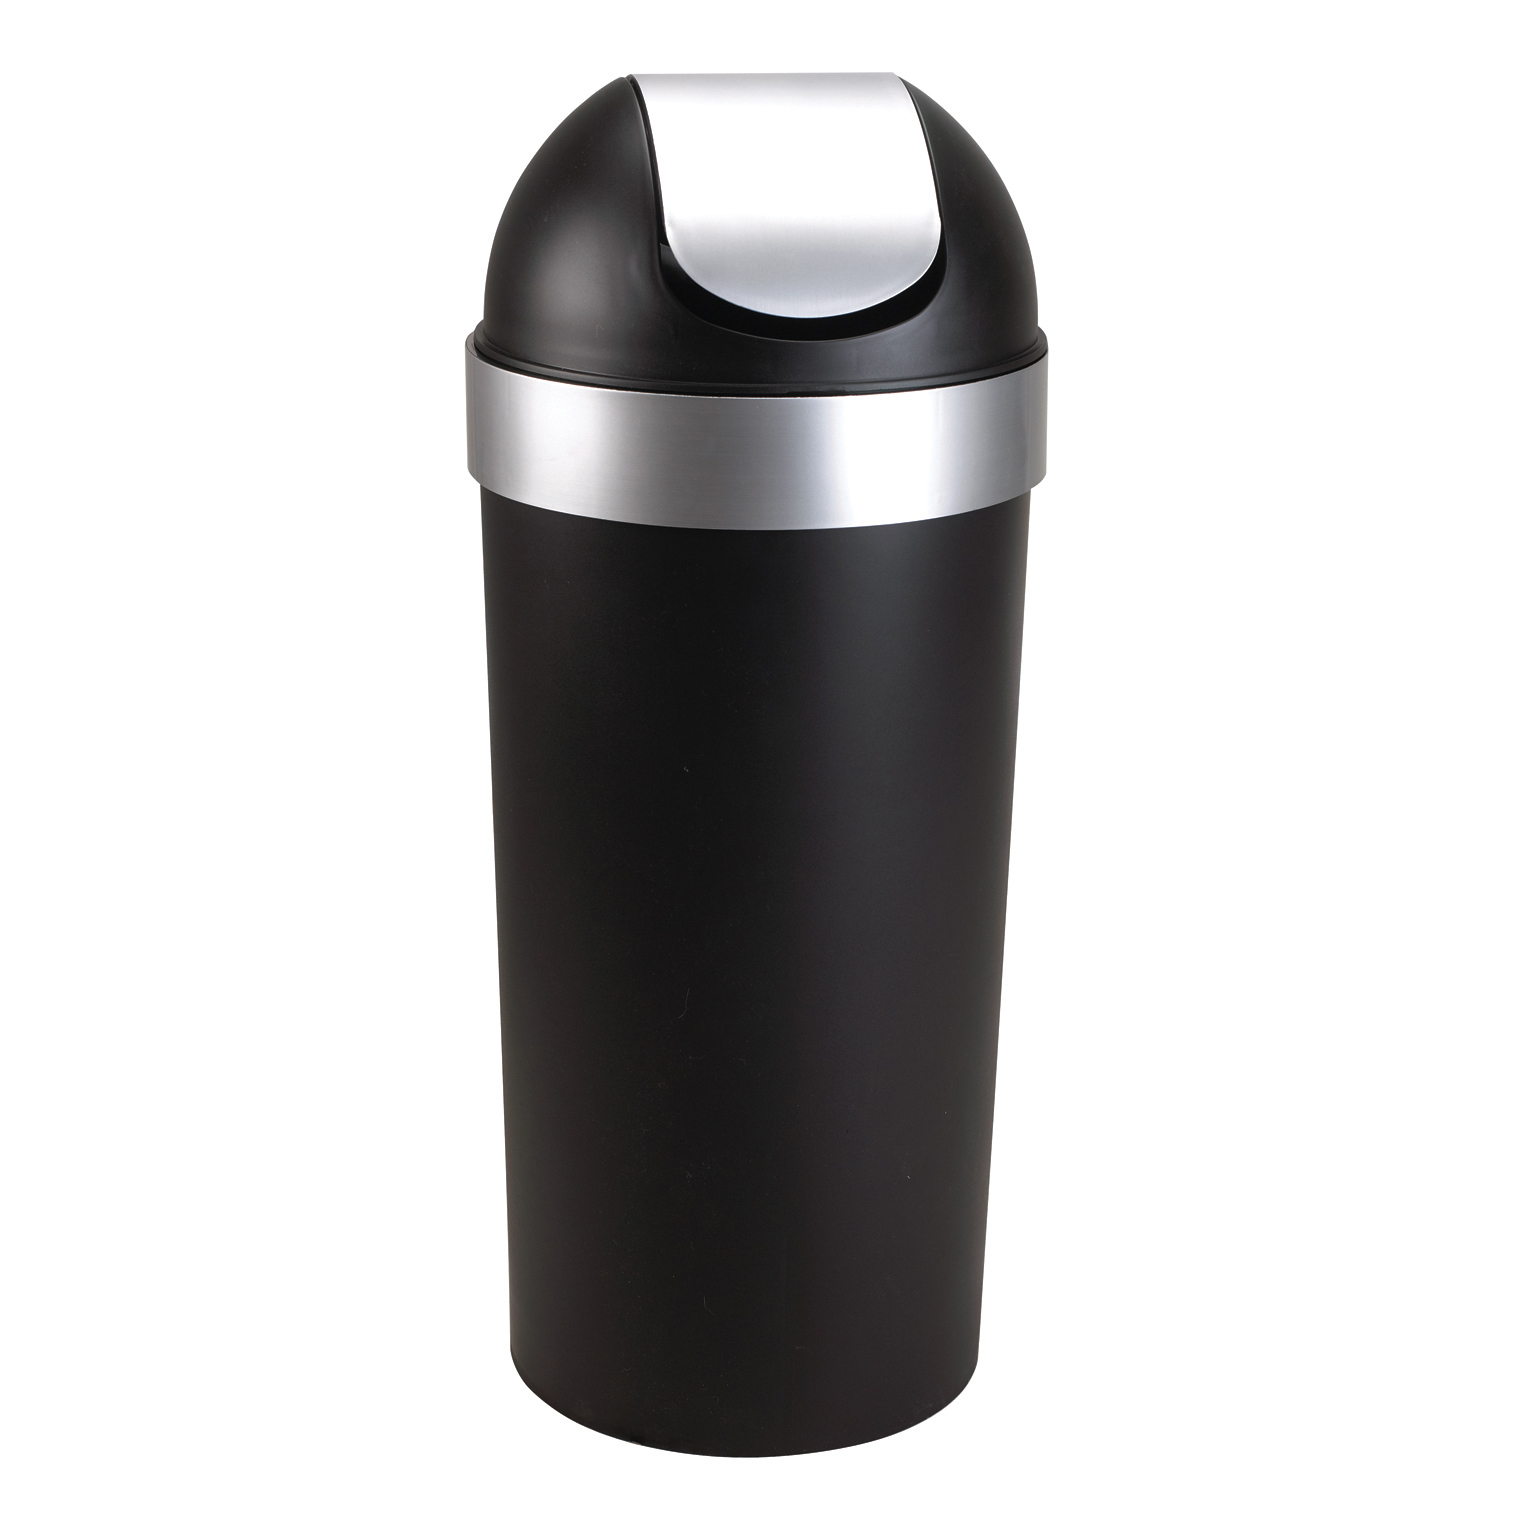 Umbra Venti 16-Gallon Swing Top Kitchen Trash Can � Large, 35-inch Tall Garbage Can for... by Umbra